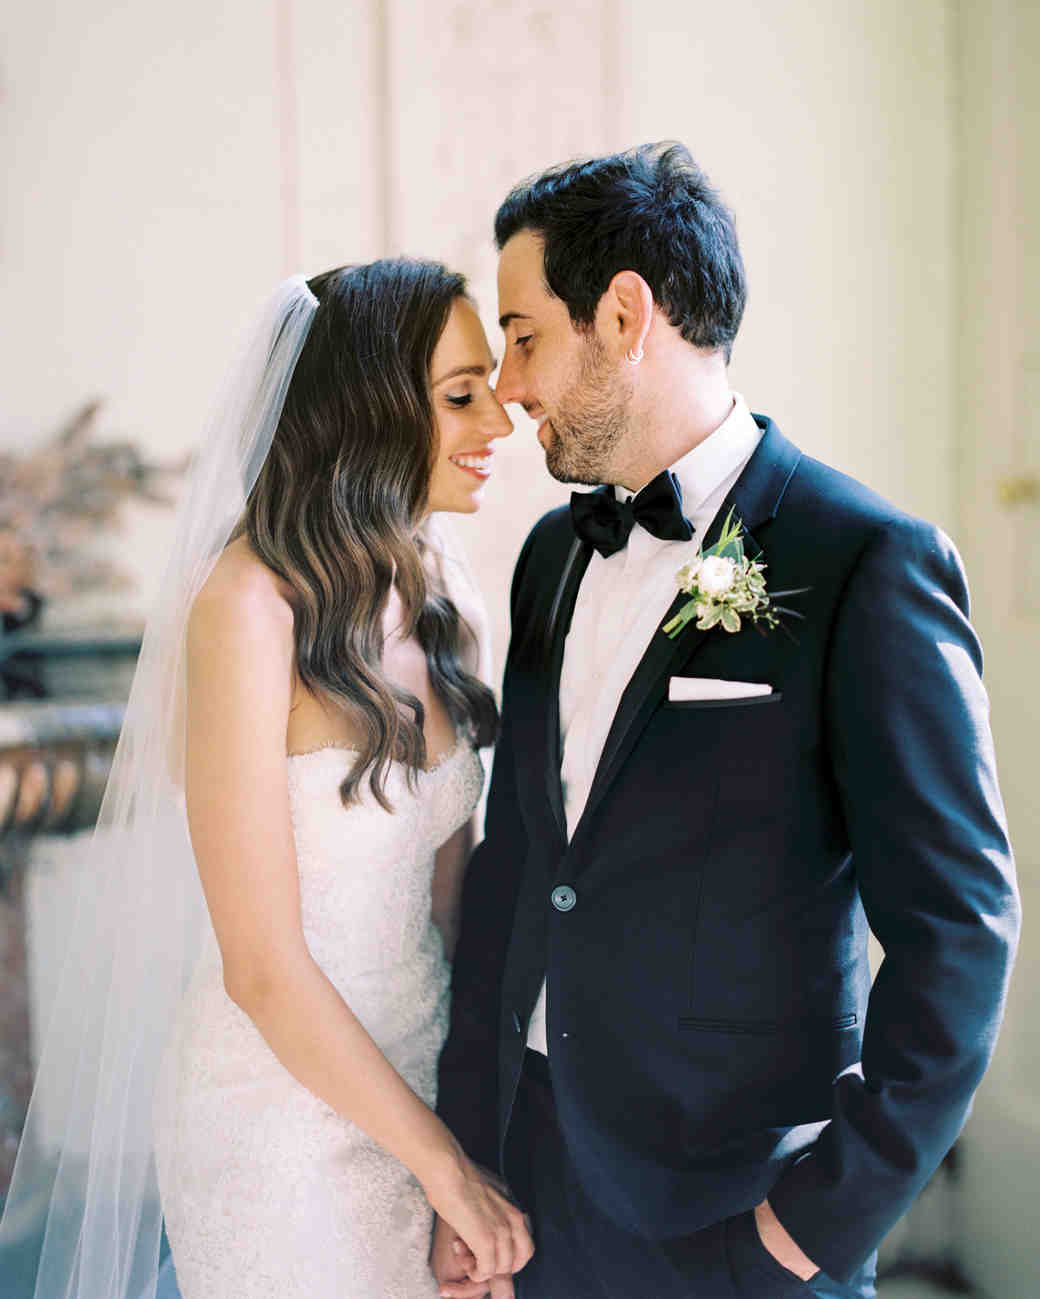 jackie-ross-wedding-couple-051-s111775-0215.jpg